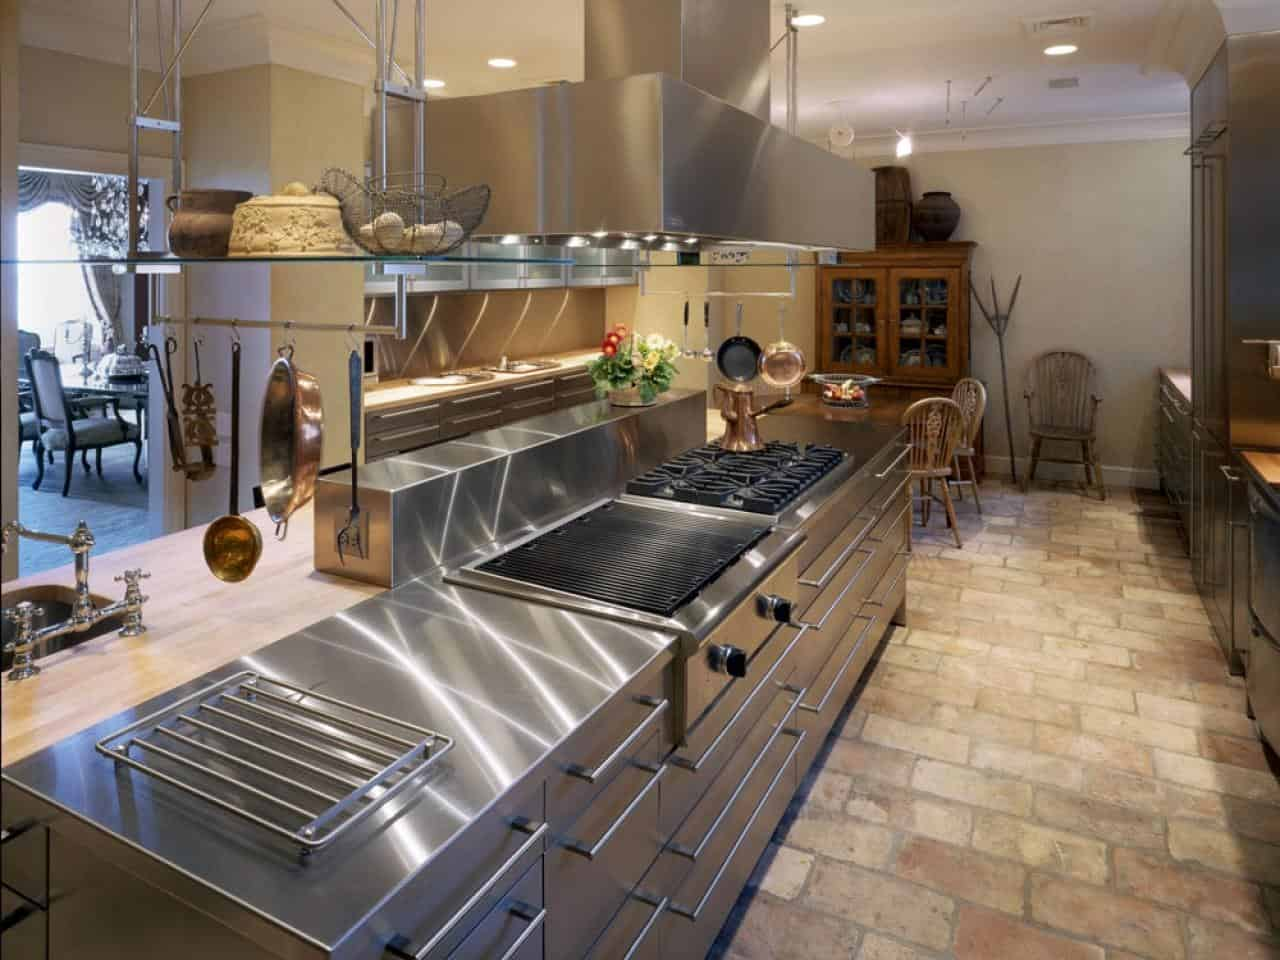 Modern Kitchen Countertops from Unusual Materials: 30 Ideas on Modern Kitchen Counter  id=48419